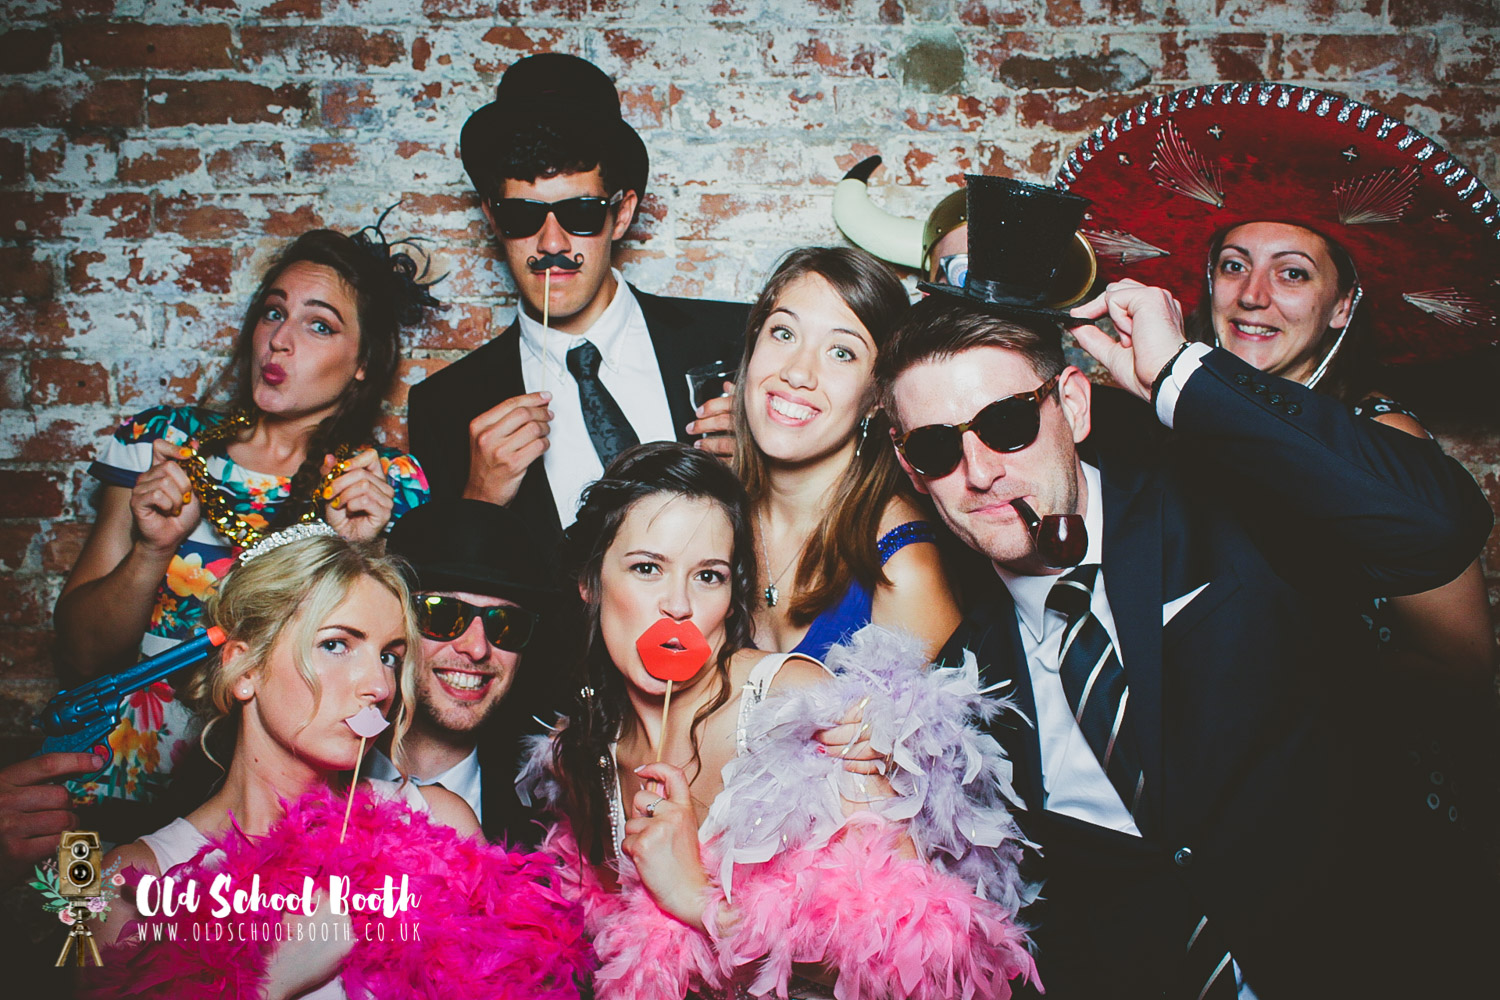 west mill vintage photo booth